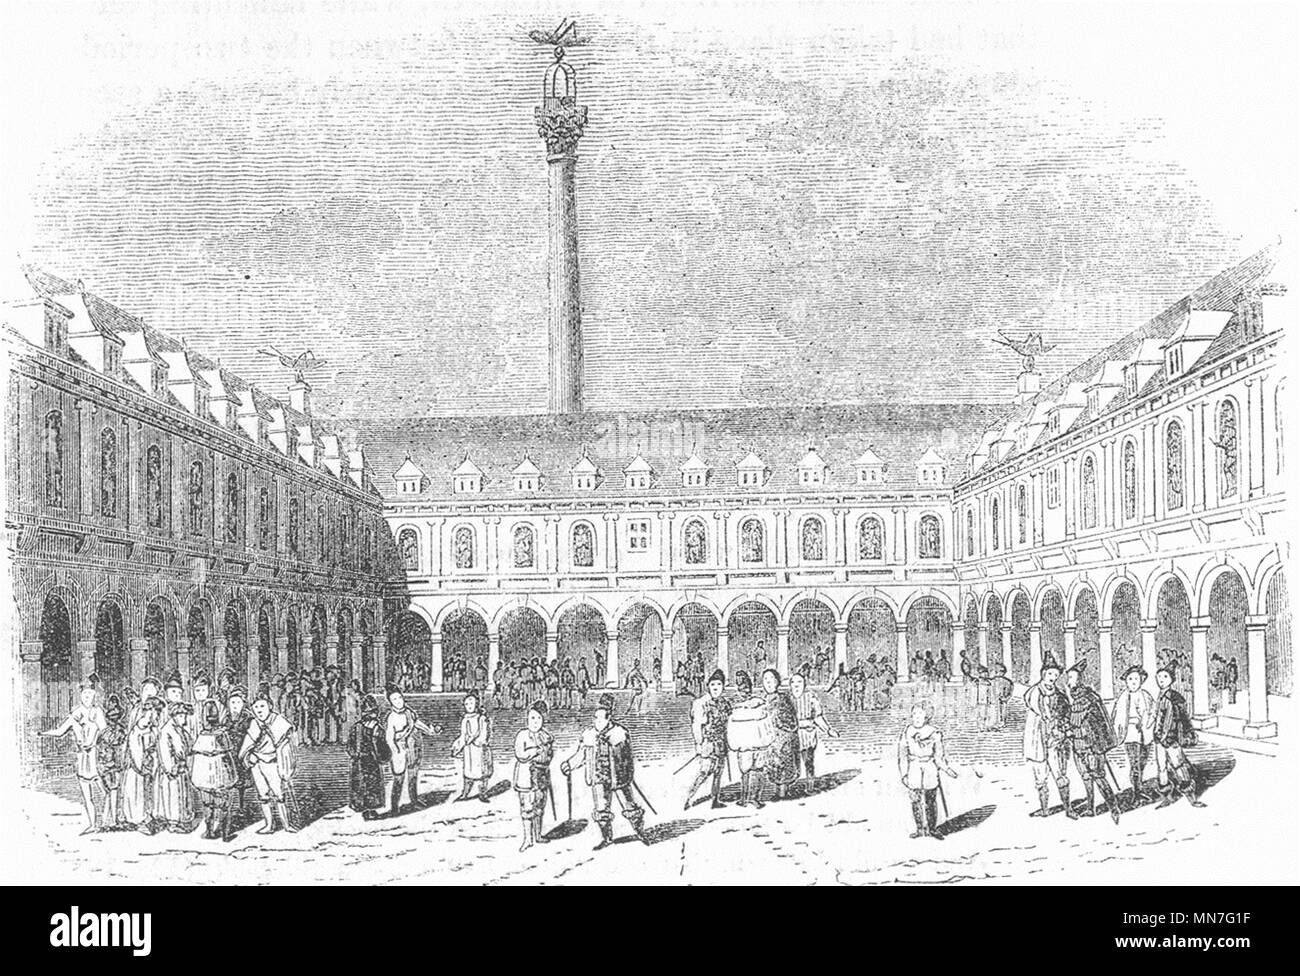 LONDON. Thomas Greshams Exchange(Guildhall) 1845 old antique print picture - Stock Image